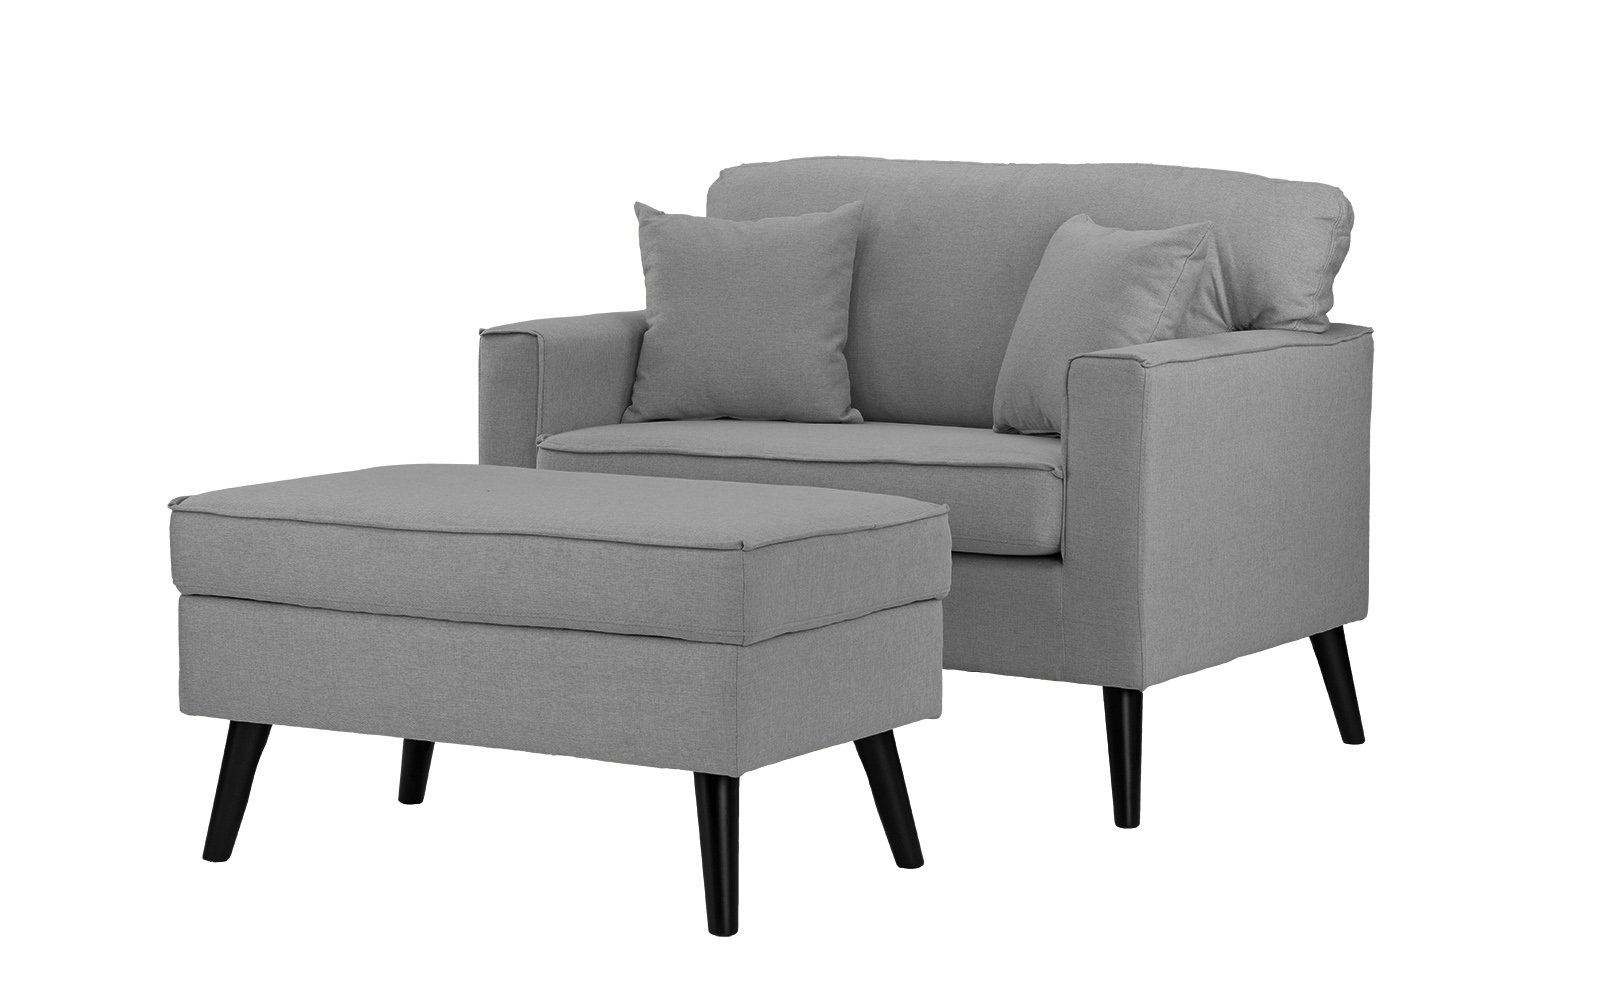 Sofa Chair With Ottoman Throughout Recent Timothy Modern Accent Chair With Footrest And Storage Compartment (View 18 of 20)